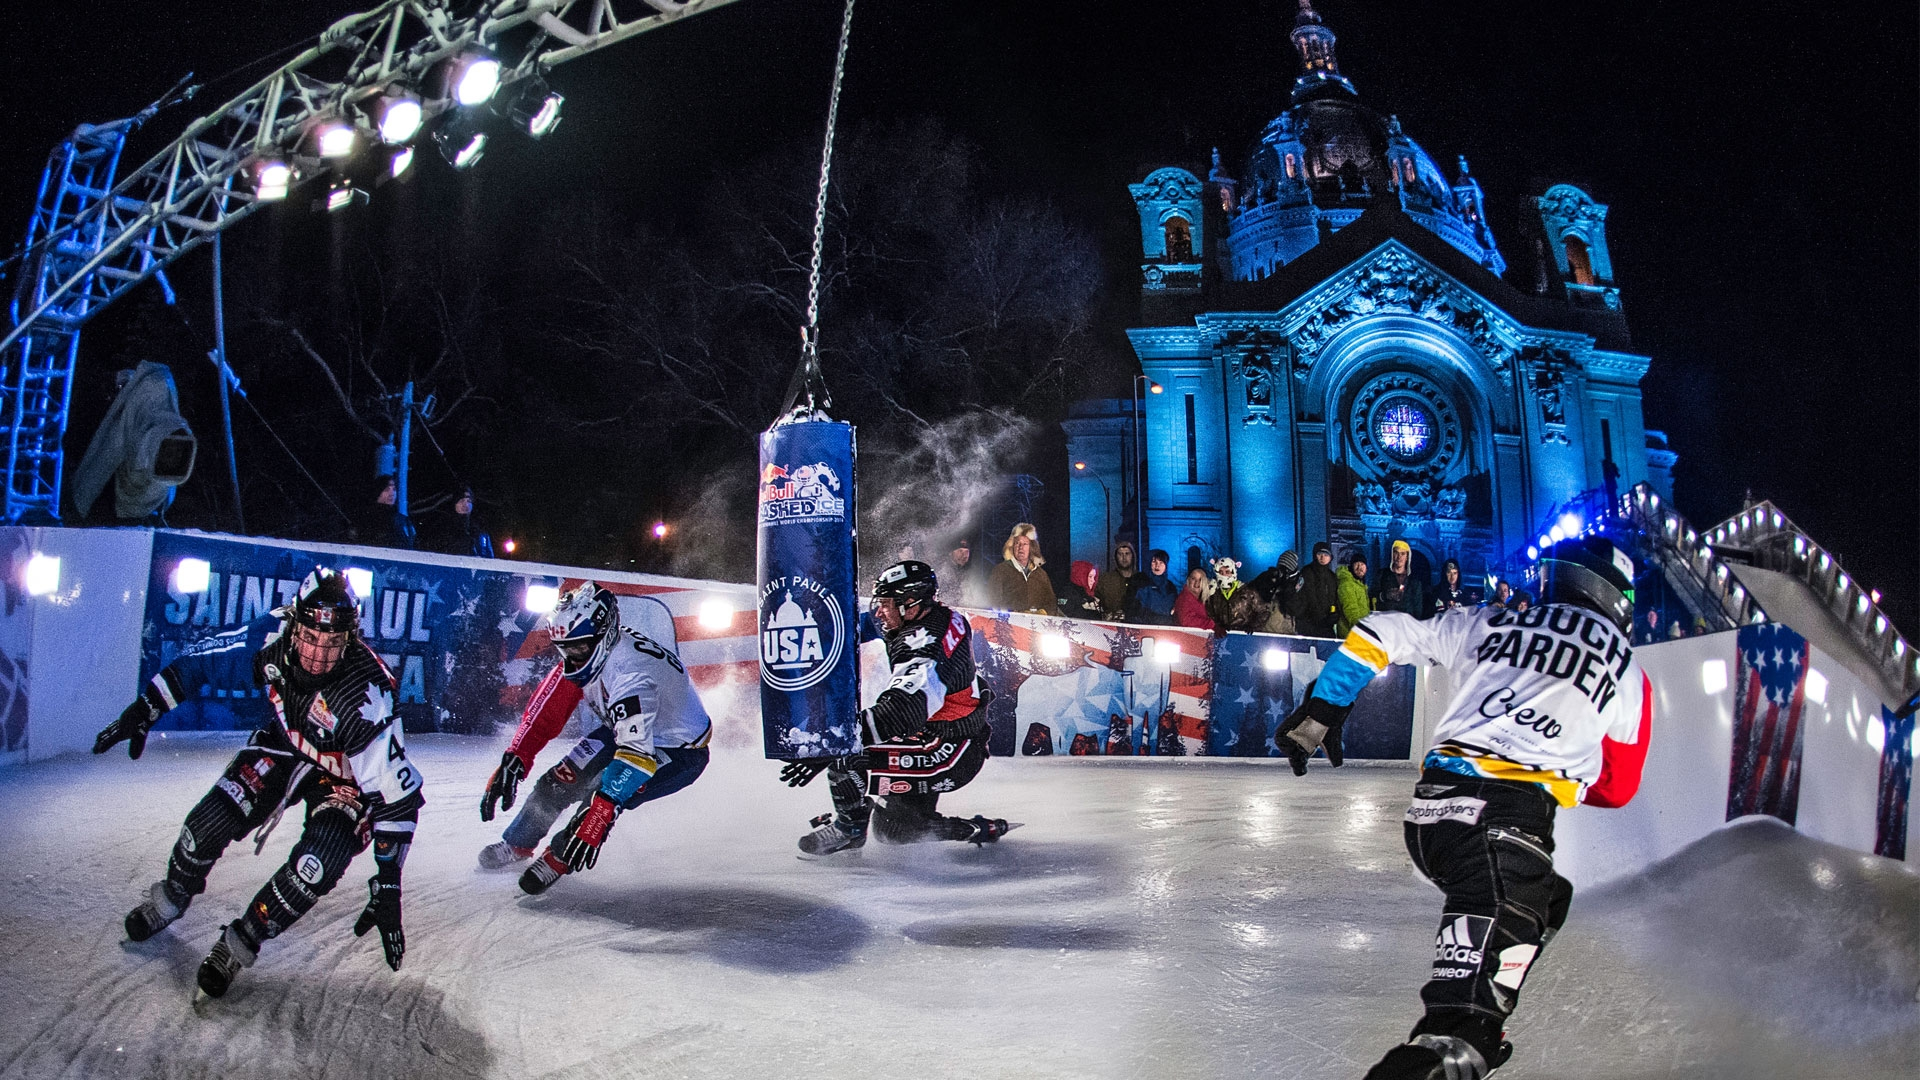 Since 2012, Saint Paul has been the only US city on the Red Bull Crashed Ice world championship circuit.